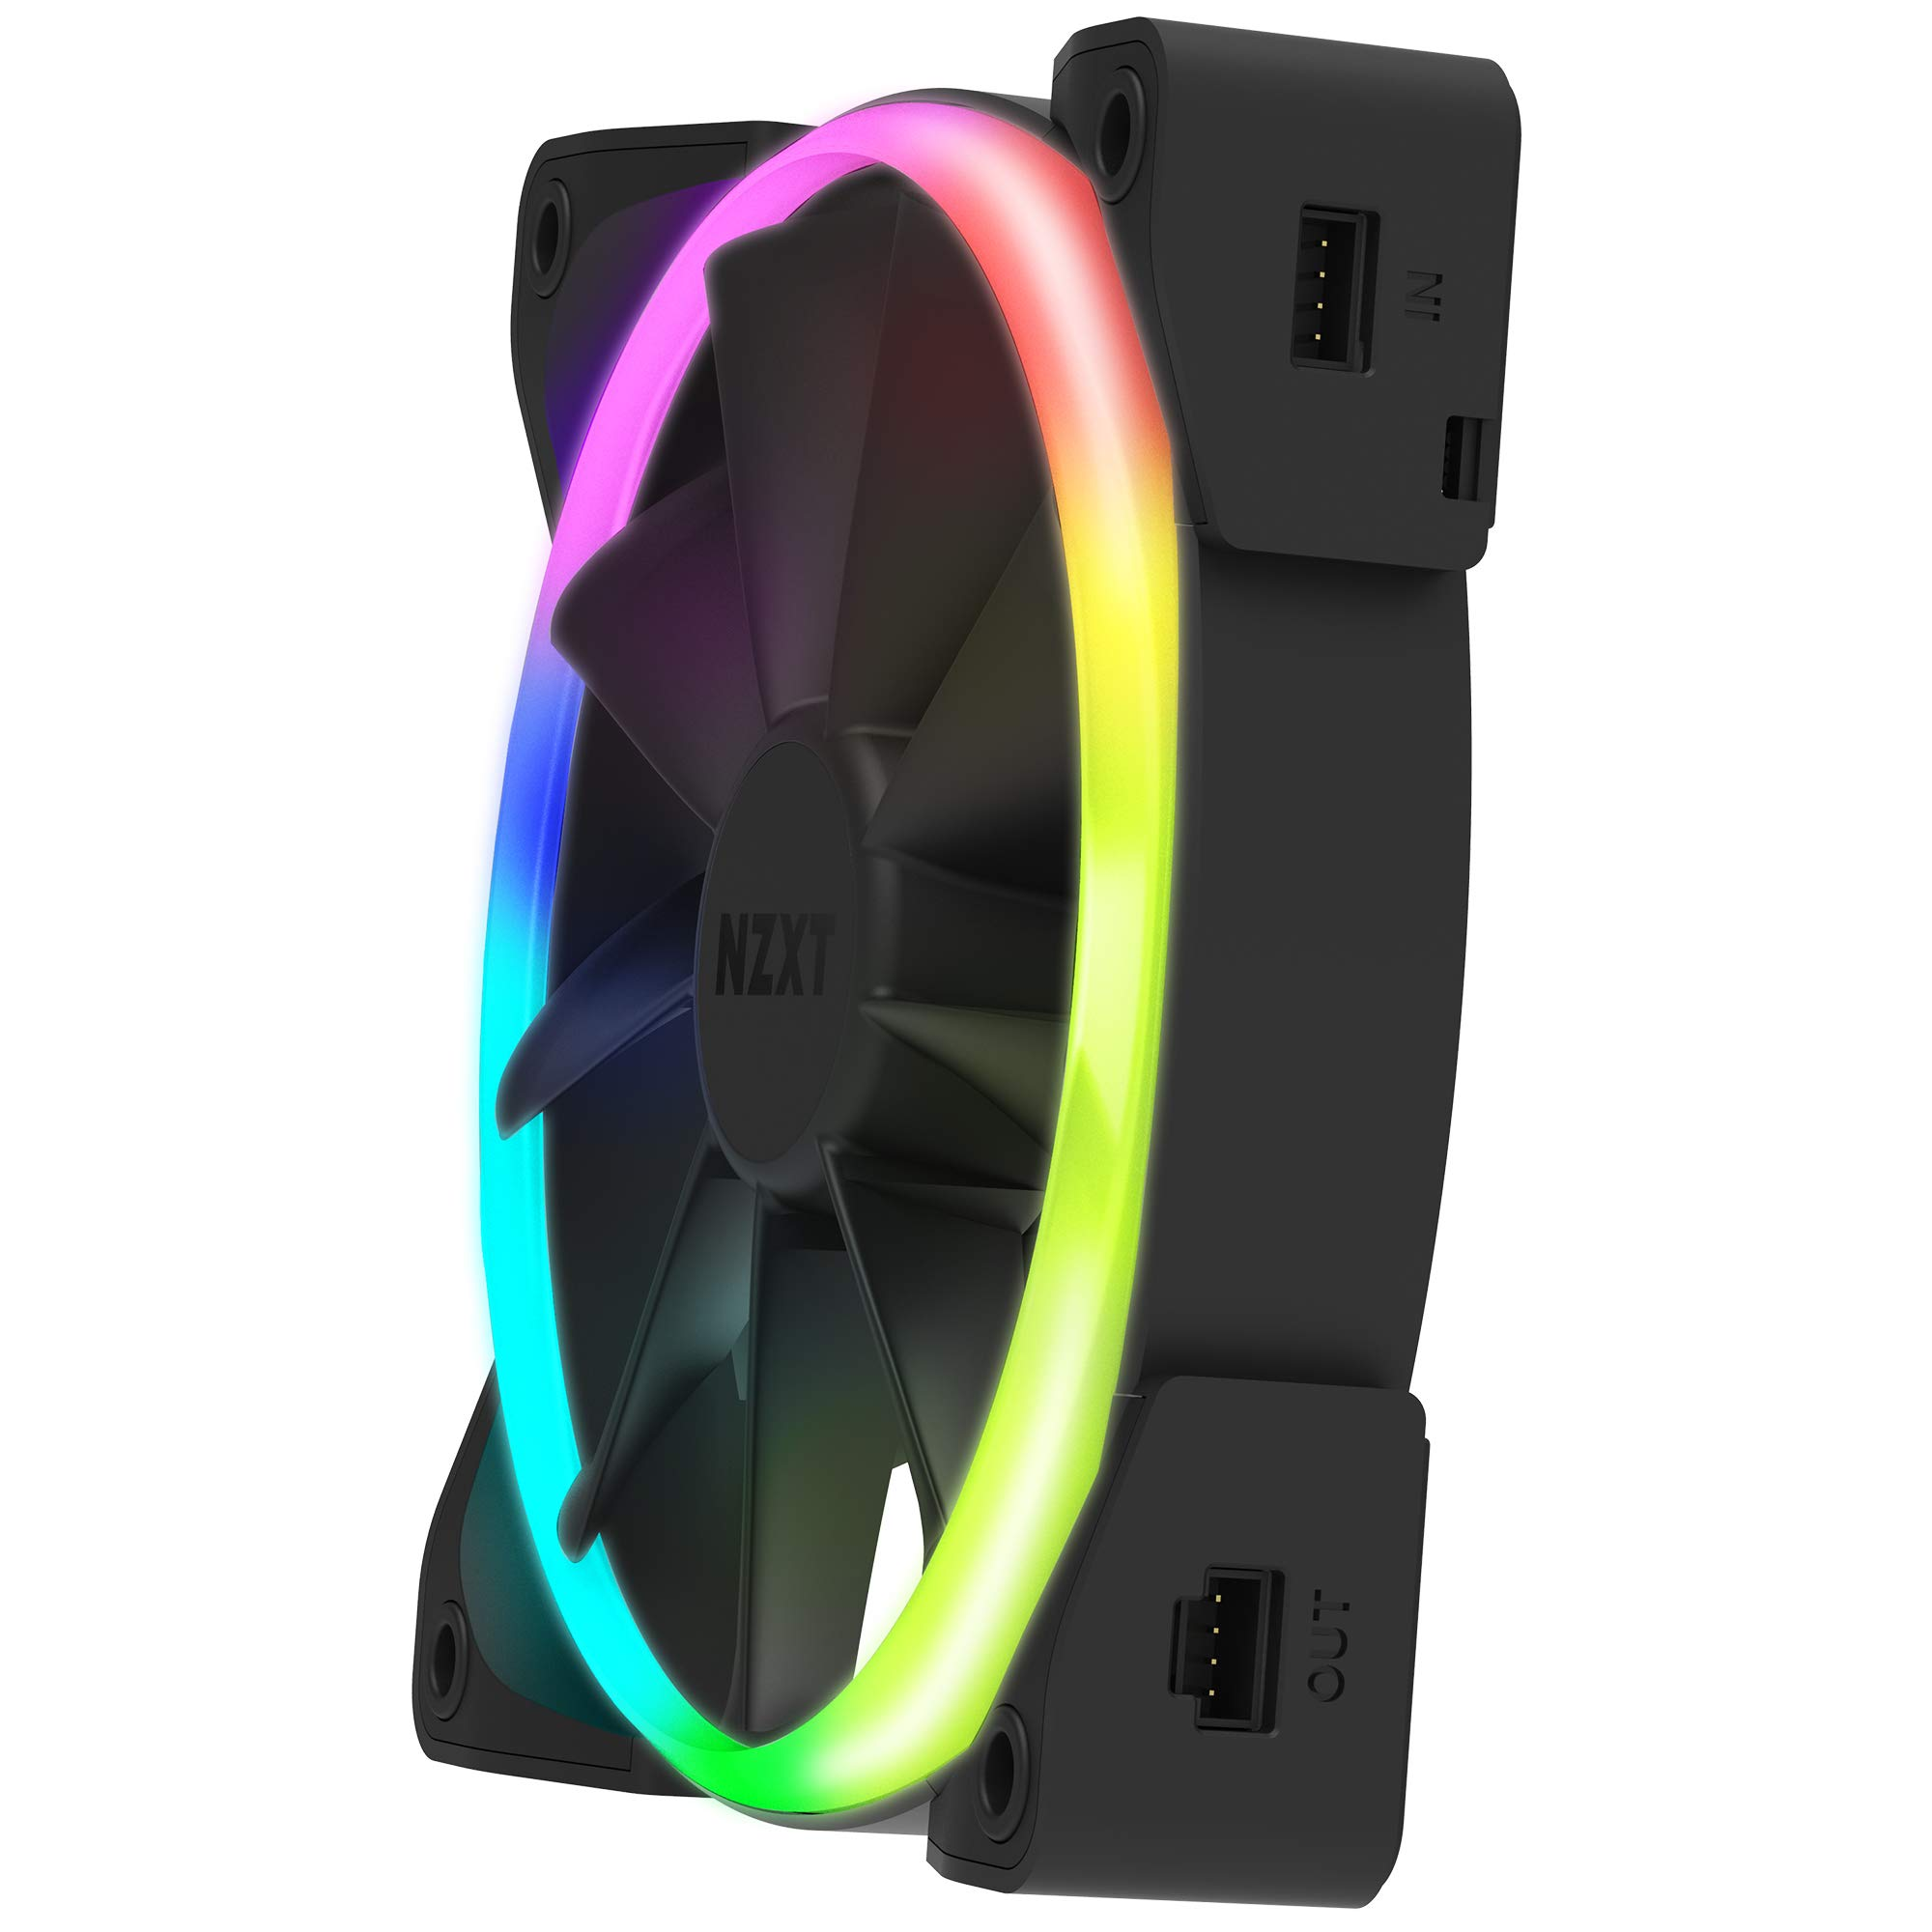 NZXT AER RGB 2 - 3-Pack of 120mm RGB PWM Fans with Hue 2 Lighting Controller - Advanced Lighting Customizations - LED RGB PWM Fans - Winglet Tips - Fluid Dynamic Bearing -  PC Case Fan by NZXT (Image #4)